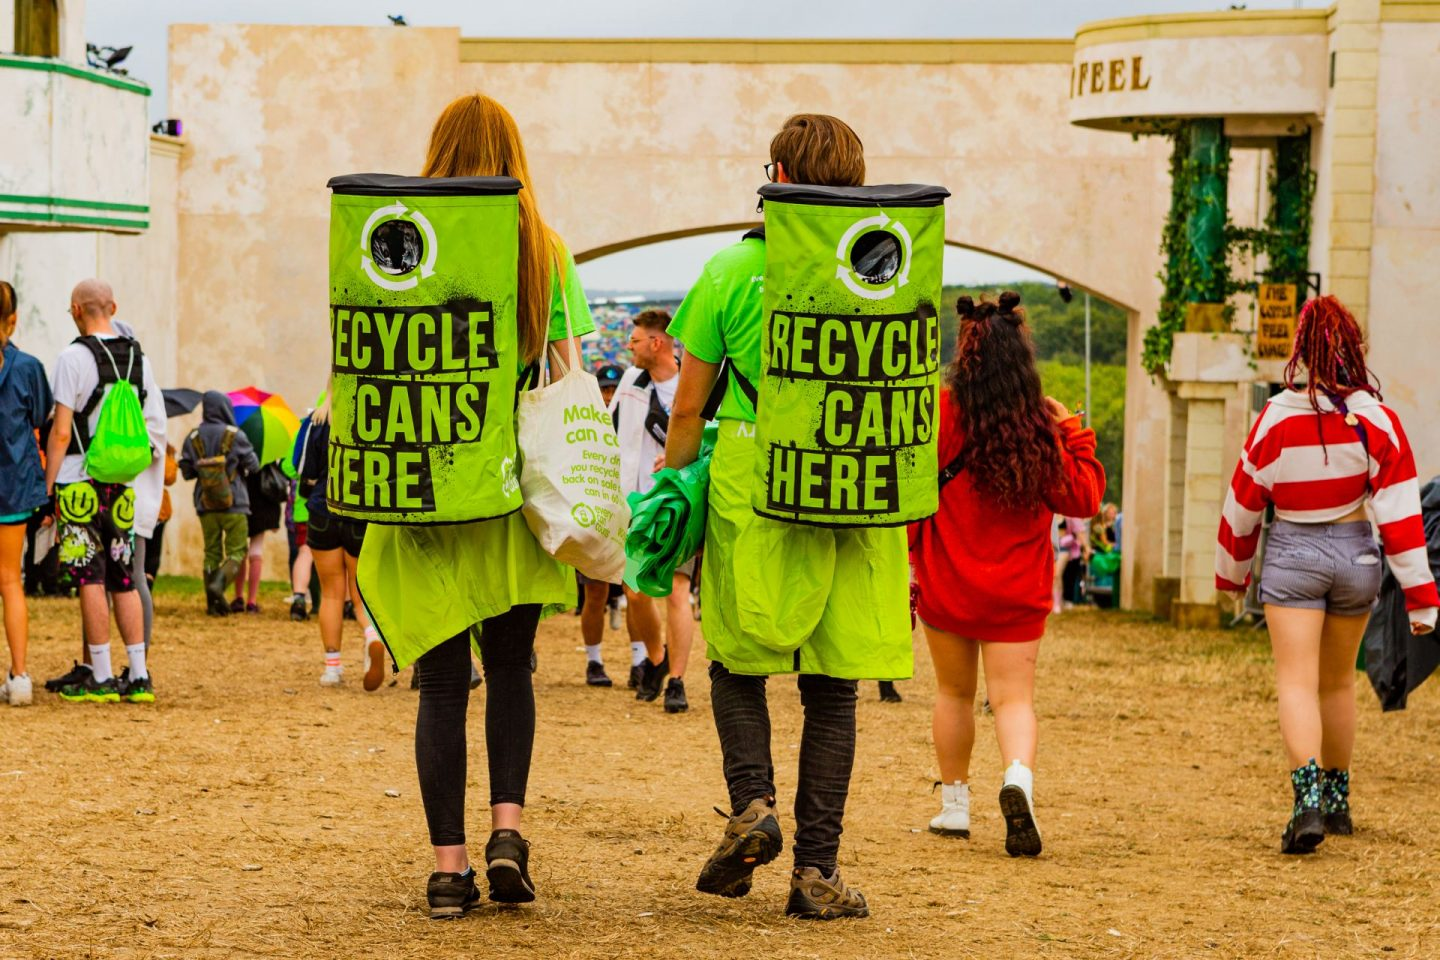 Every Can Counts, sustainability initiative at eco-friendly festival  Boomtown Fair to encourage recycling